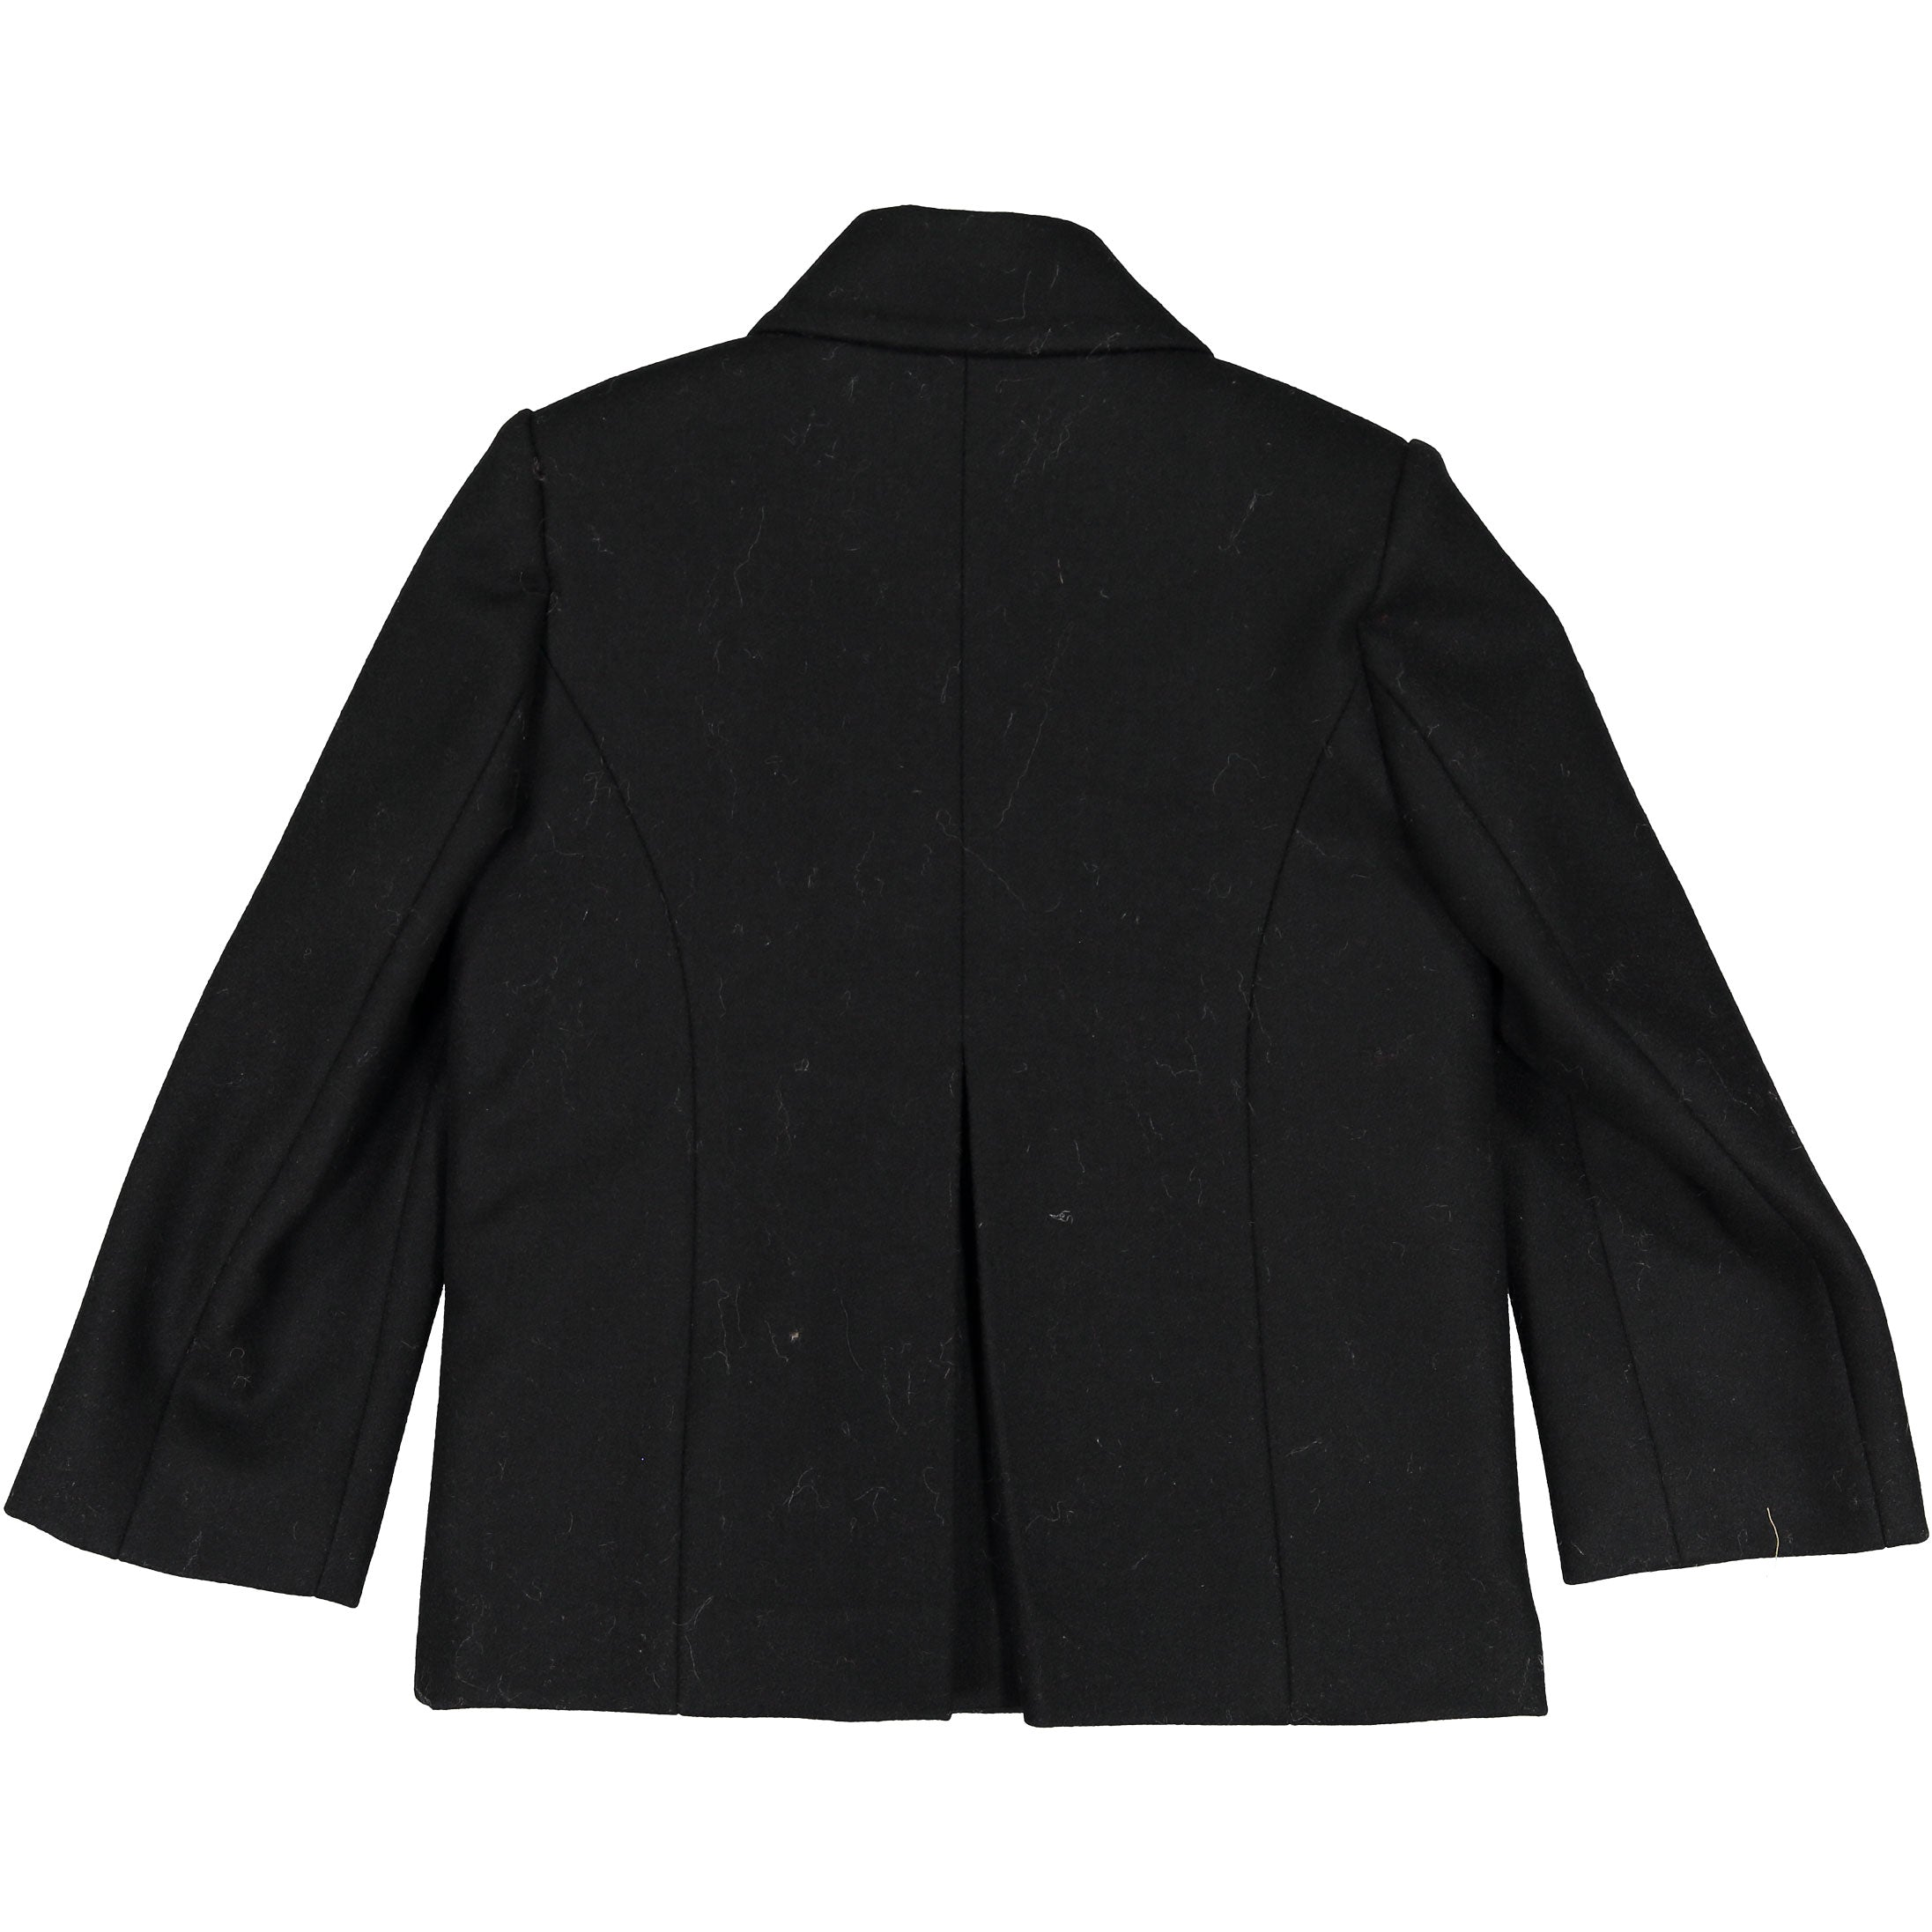 Nueces Black Lucas Coat - Ladida